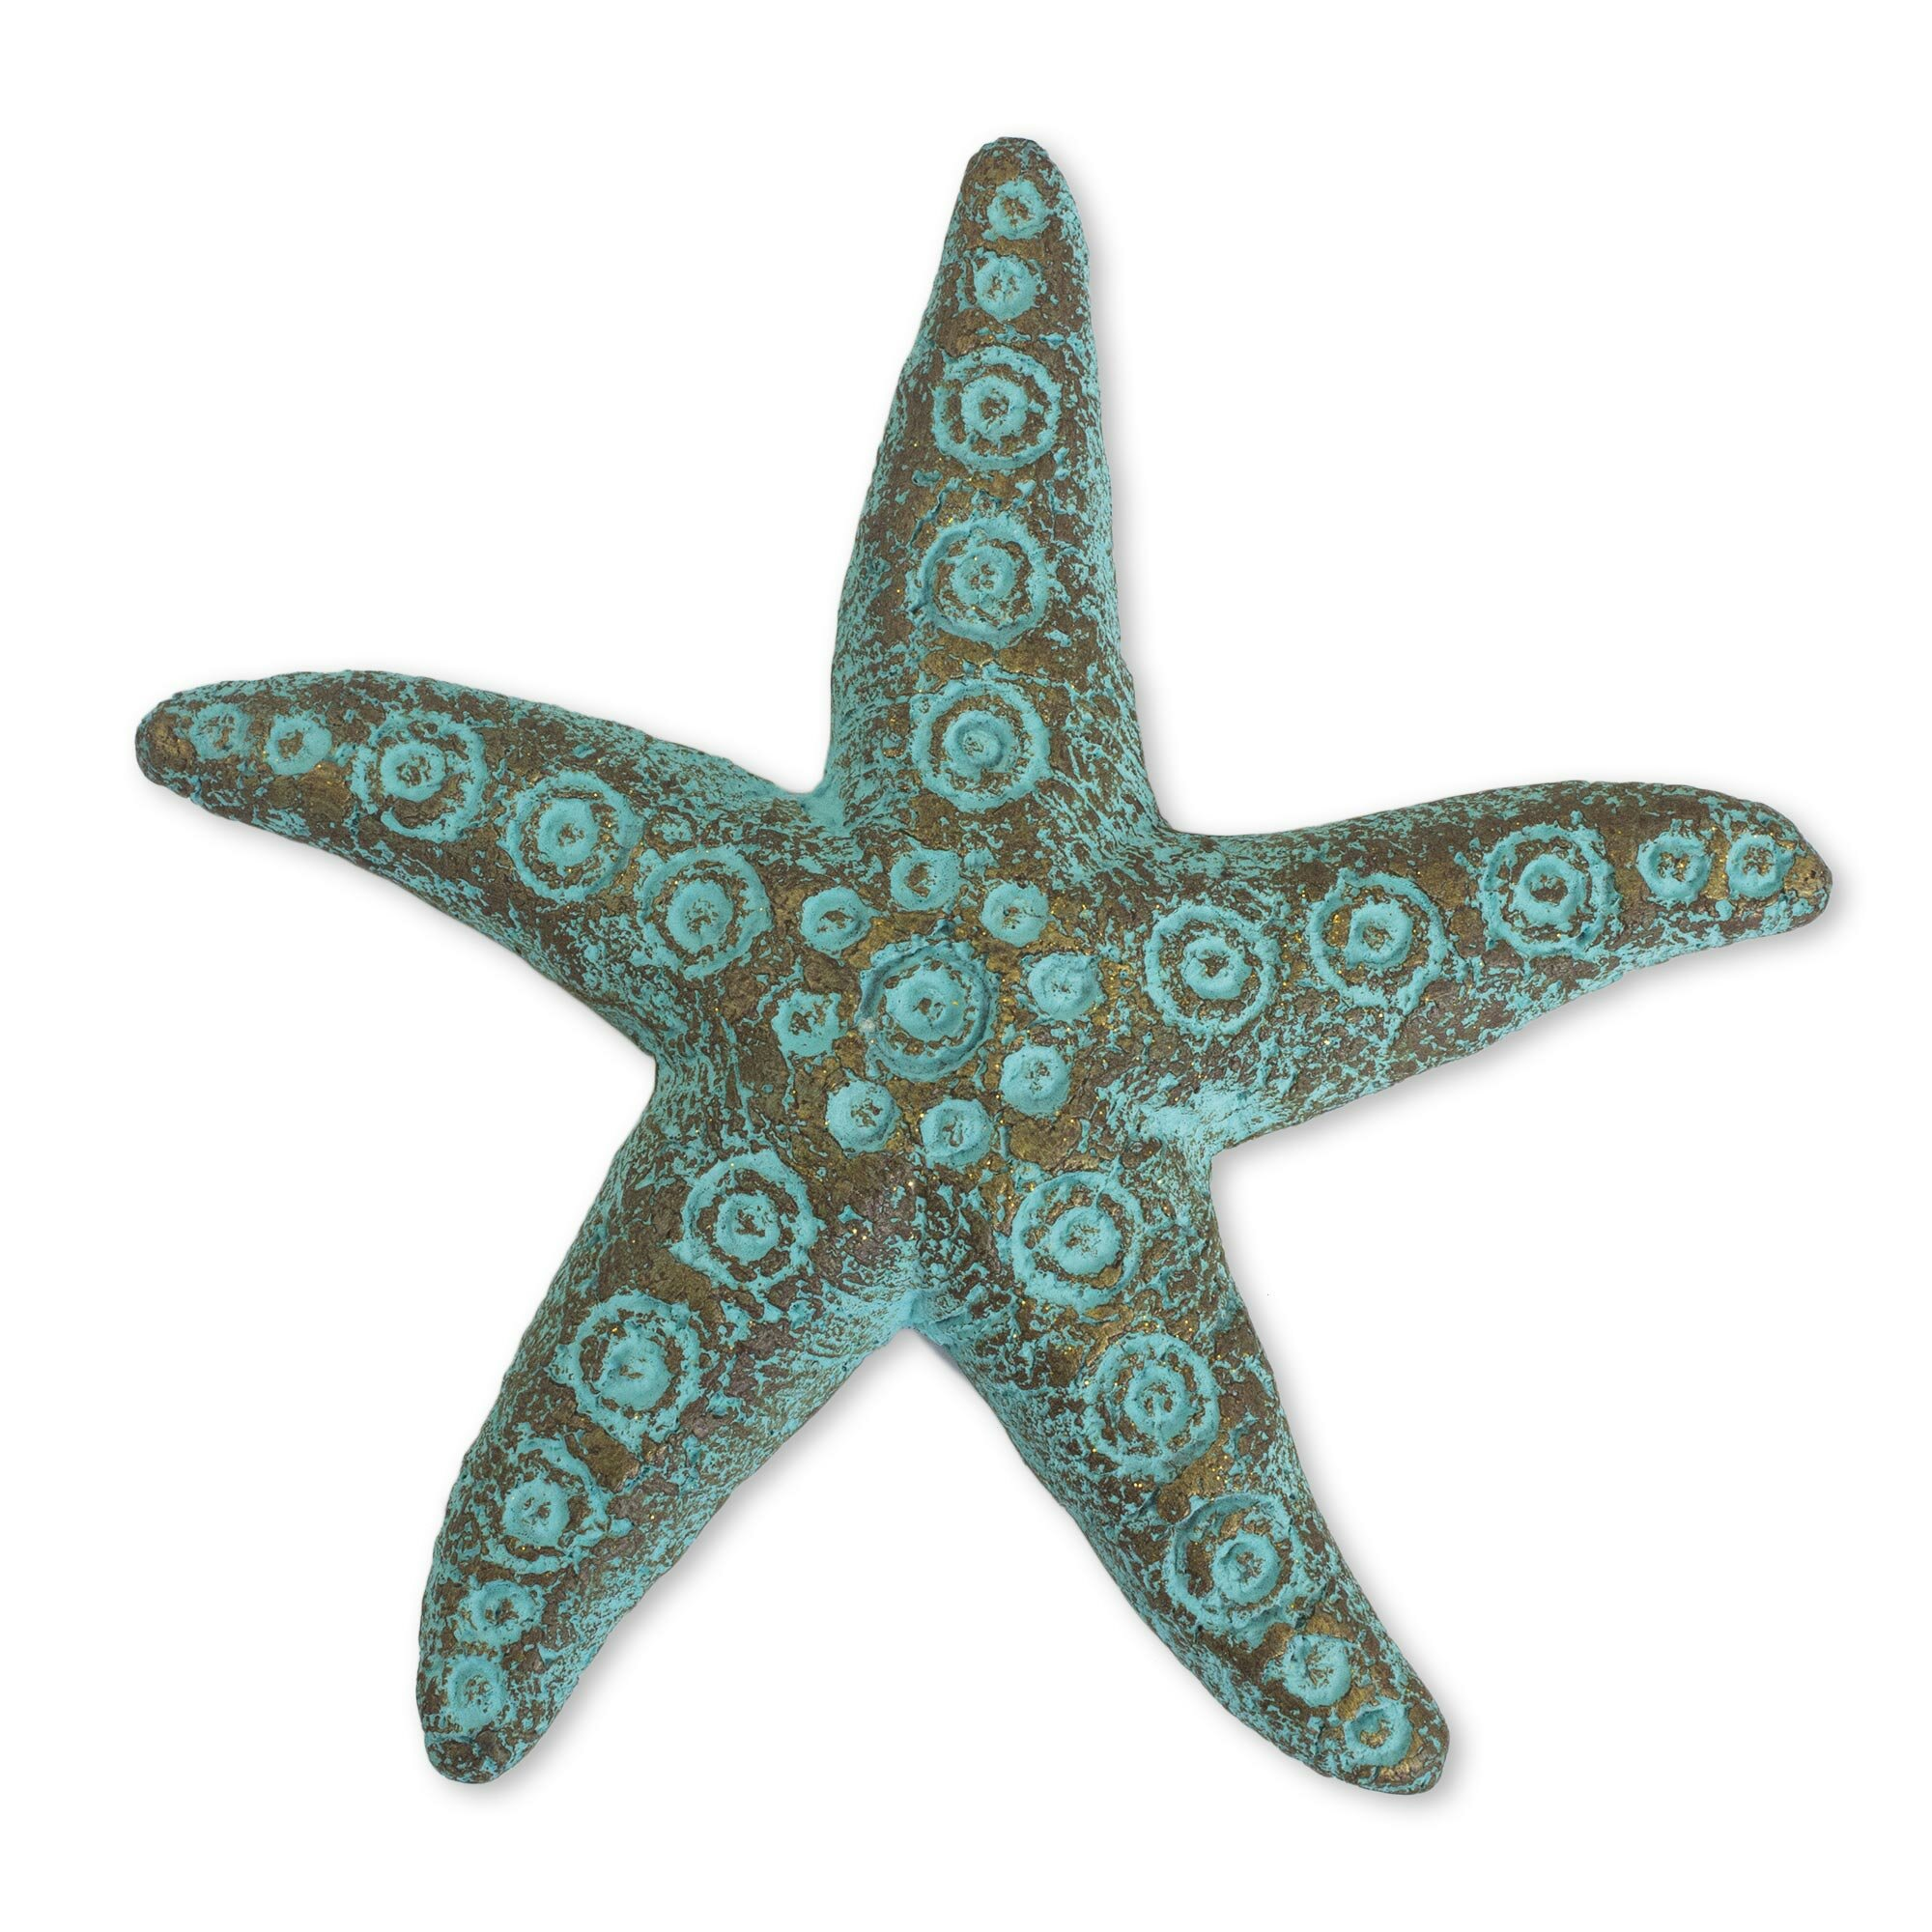 Essay on starfish